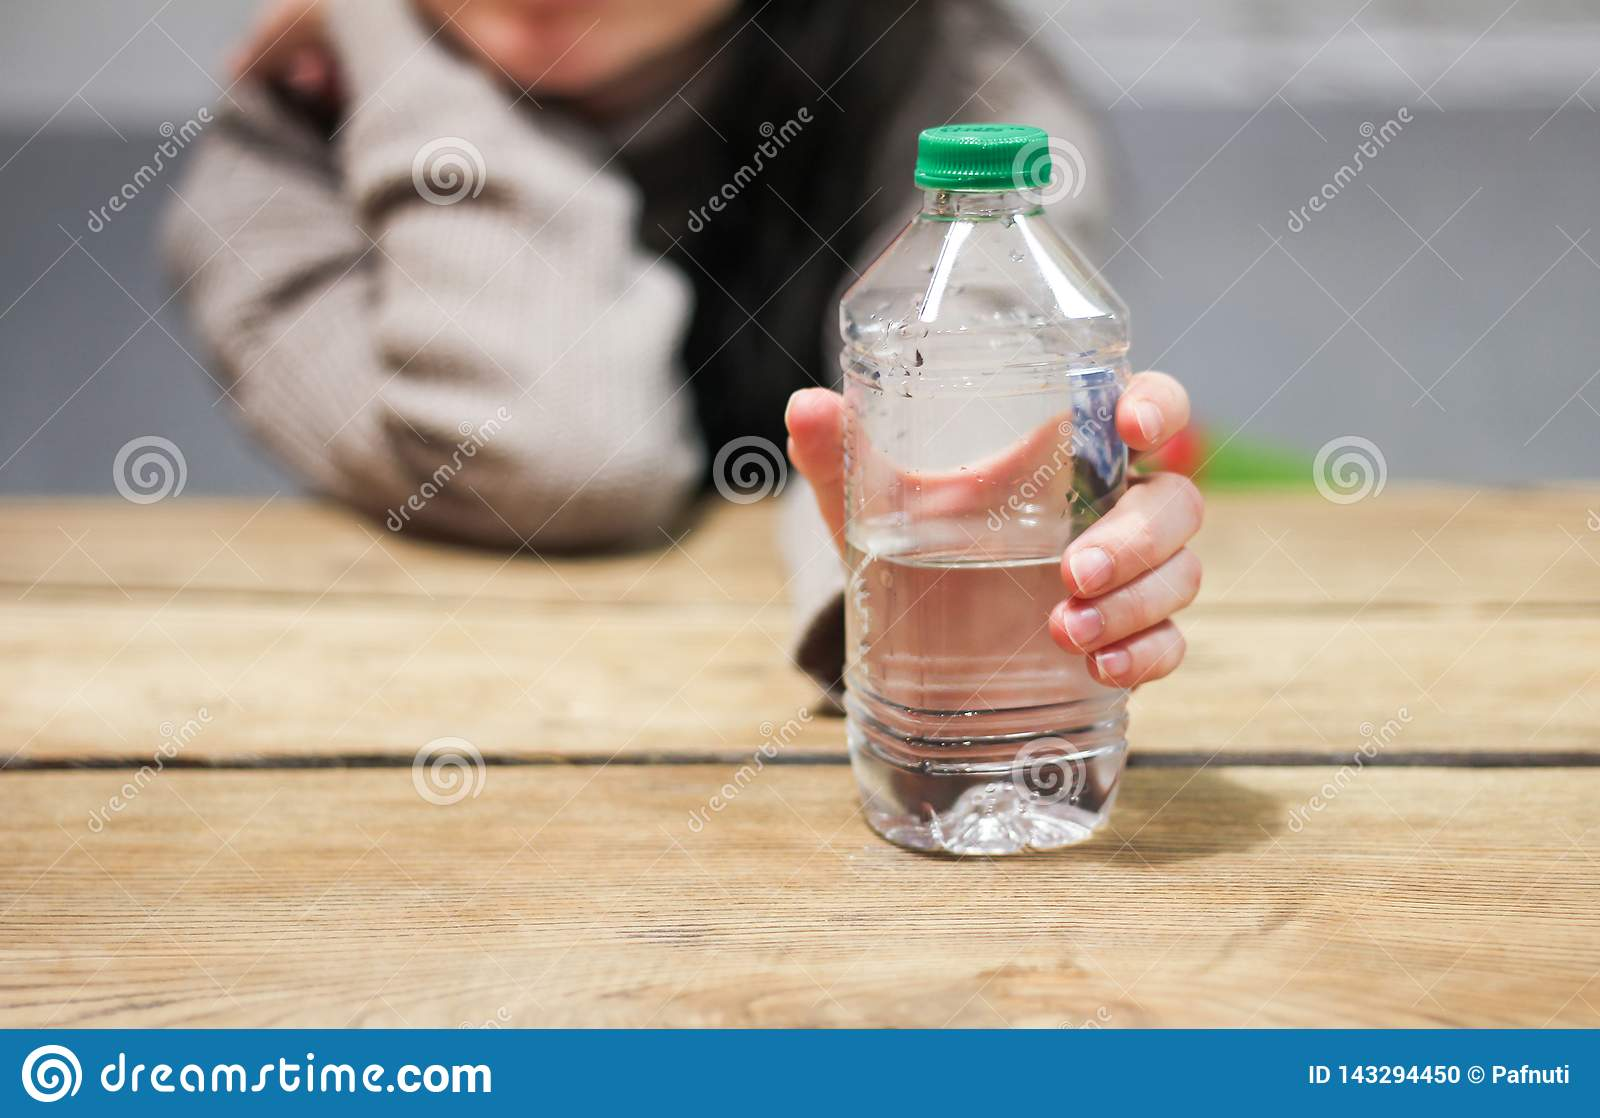 Girl holds in her hand a bottle of water on the table.